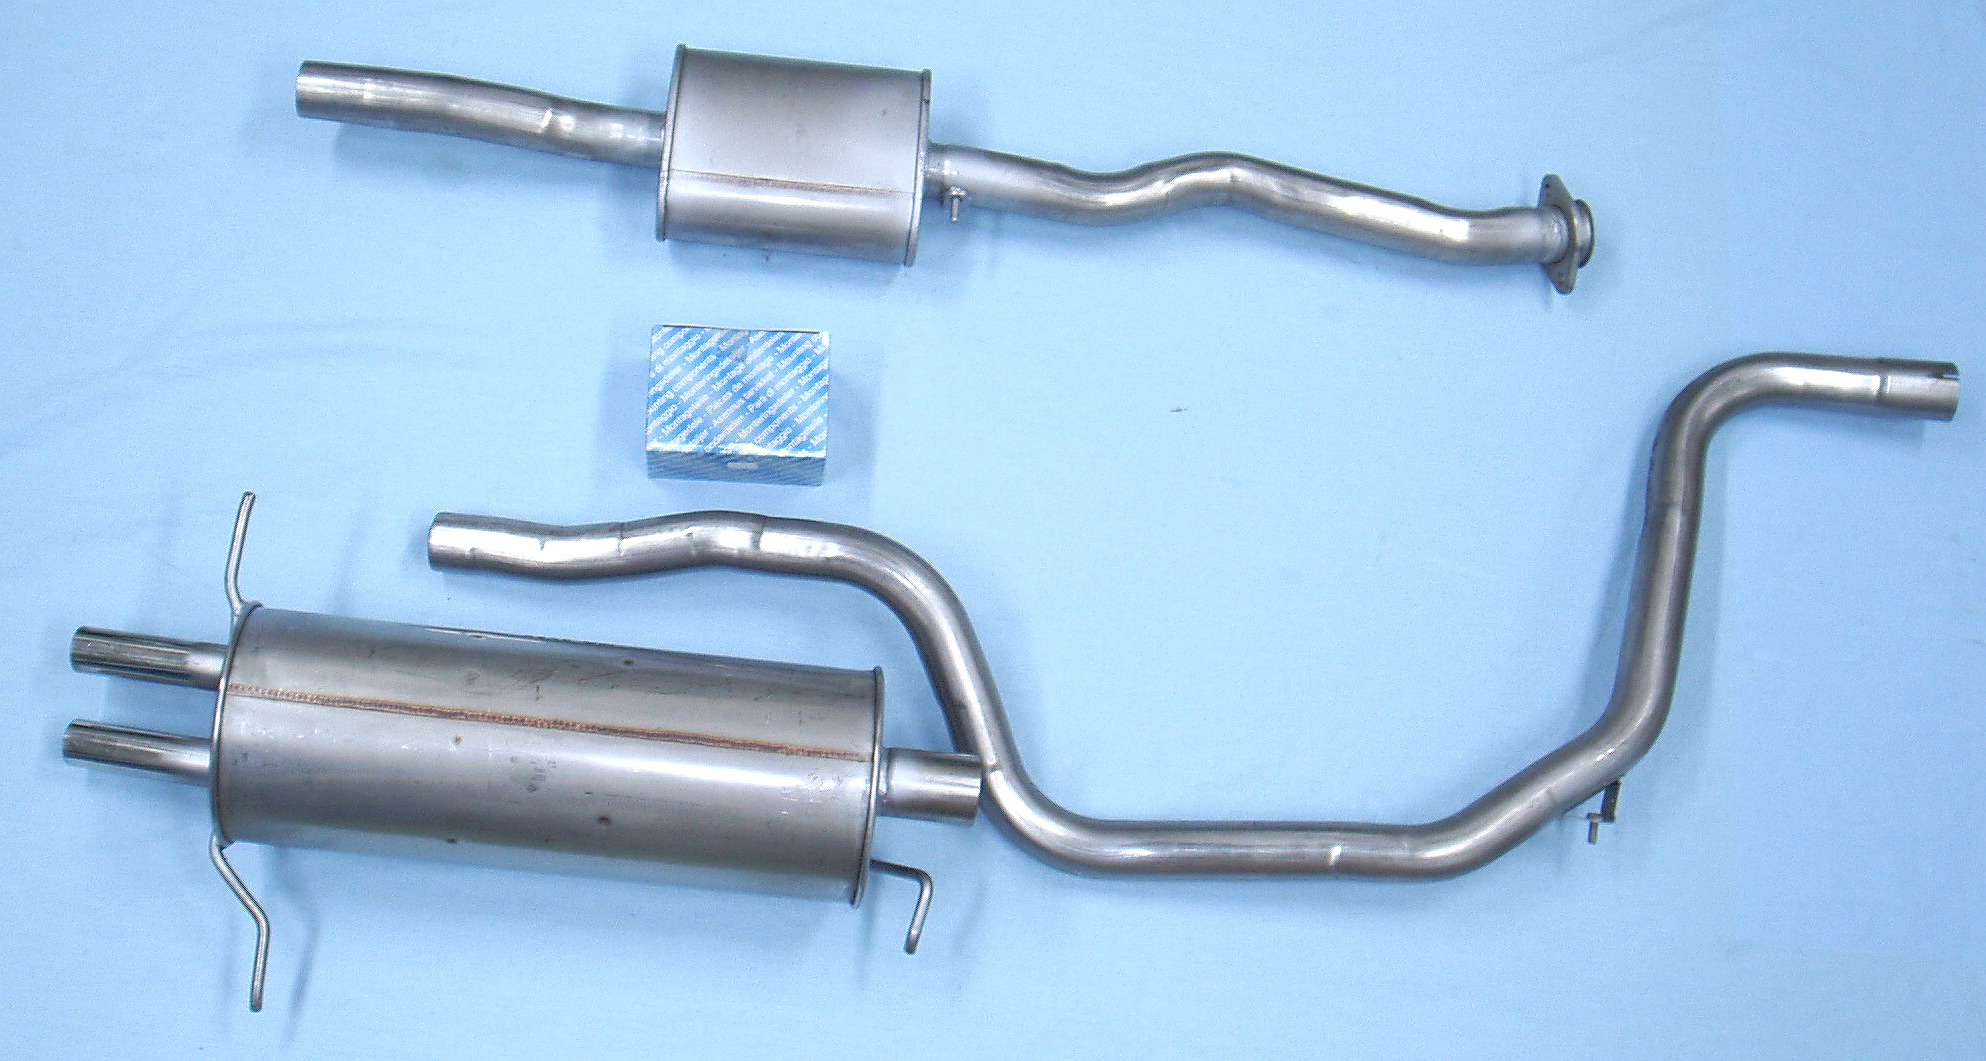 Mazda 626 2.0 (1983-aug.1987), stainless-steel-exhaust 3 rear parts ...